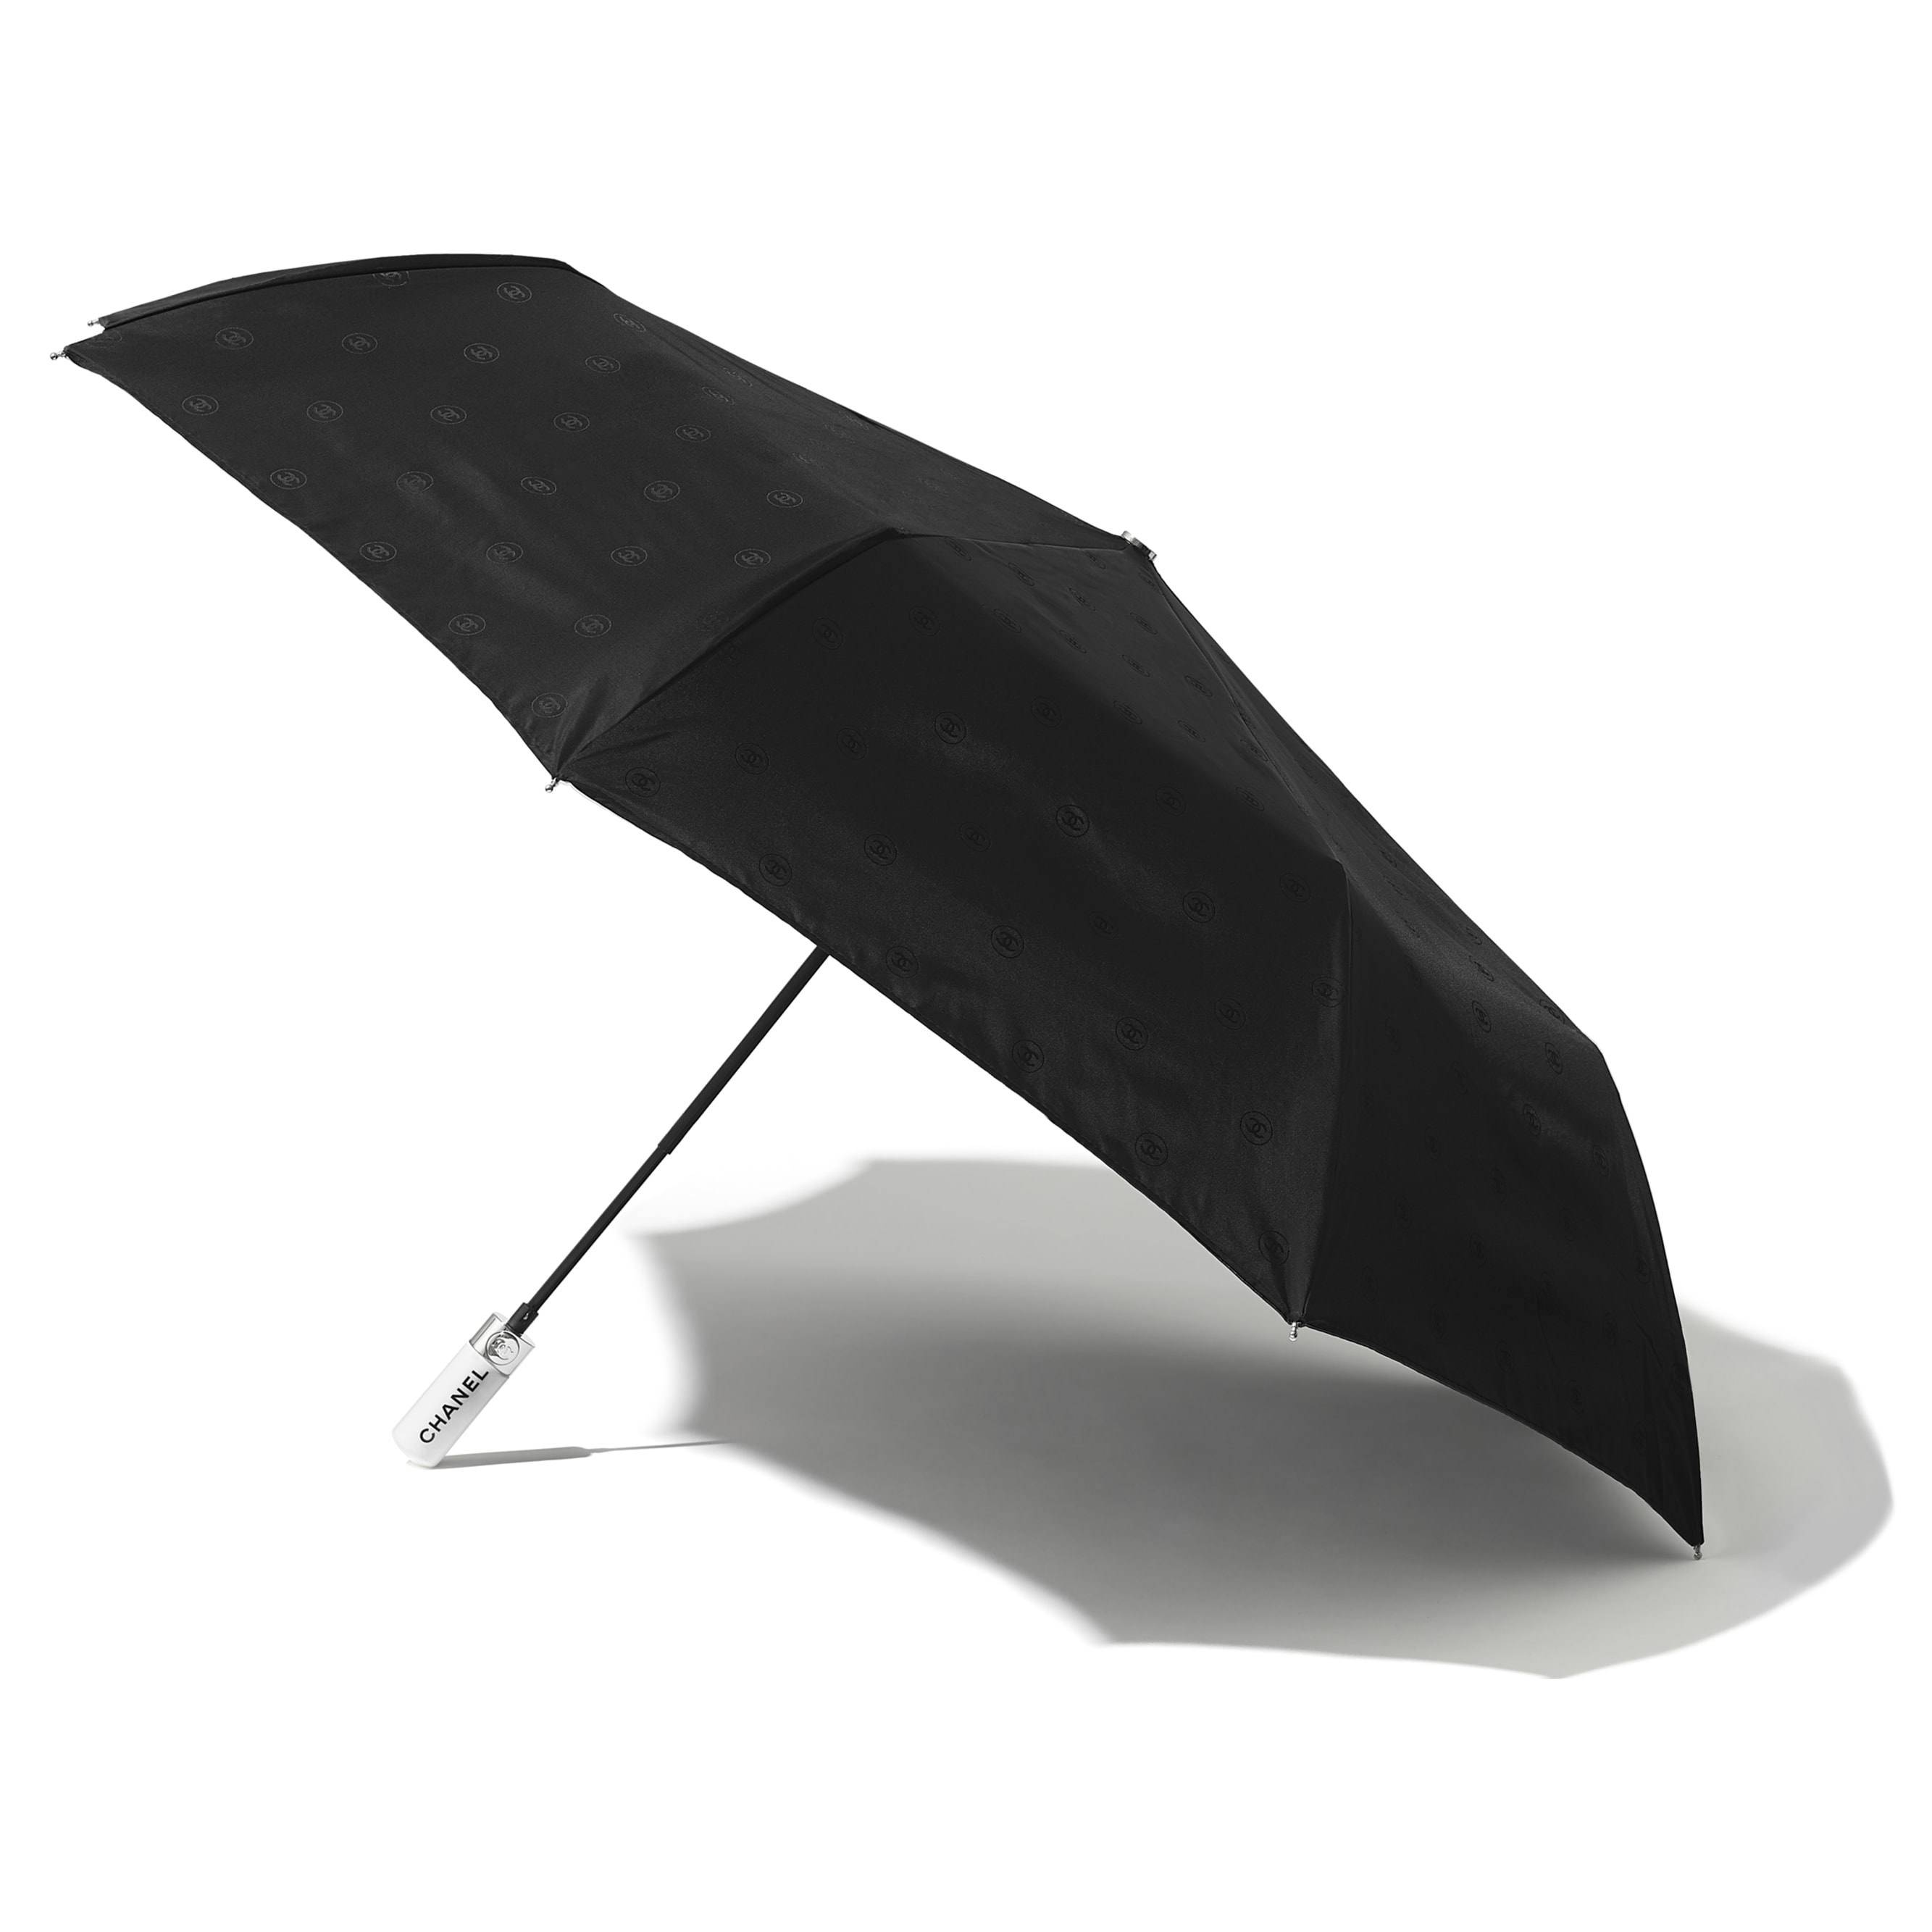 Umbrella - Black - Synthetic Fibres - CHANEL - Alternative view - see standard sized version